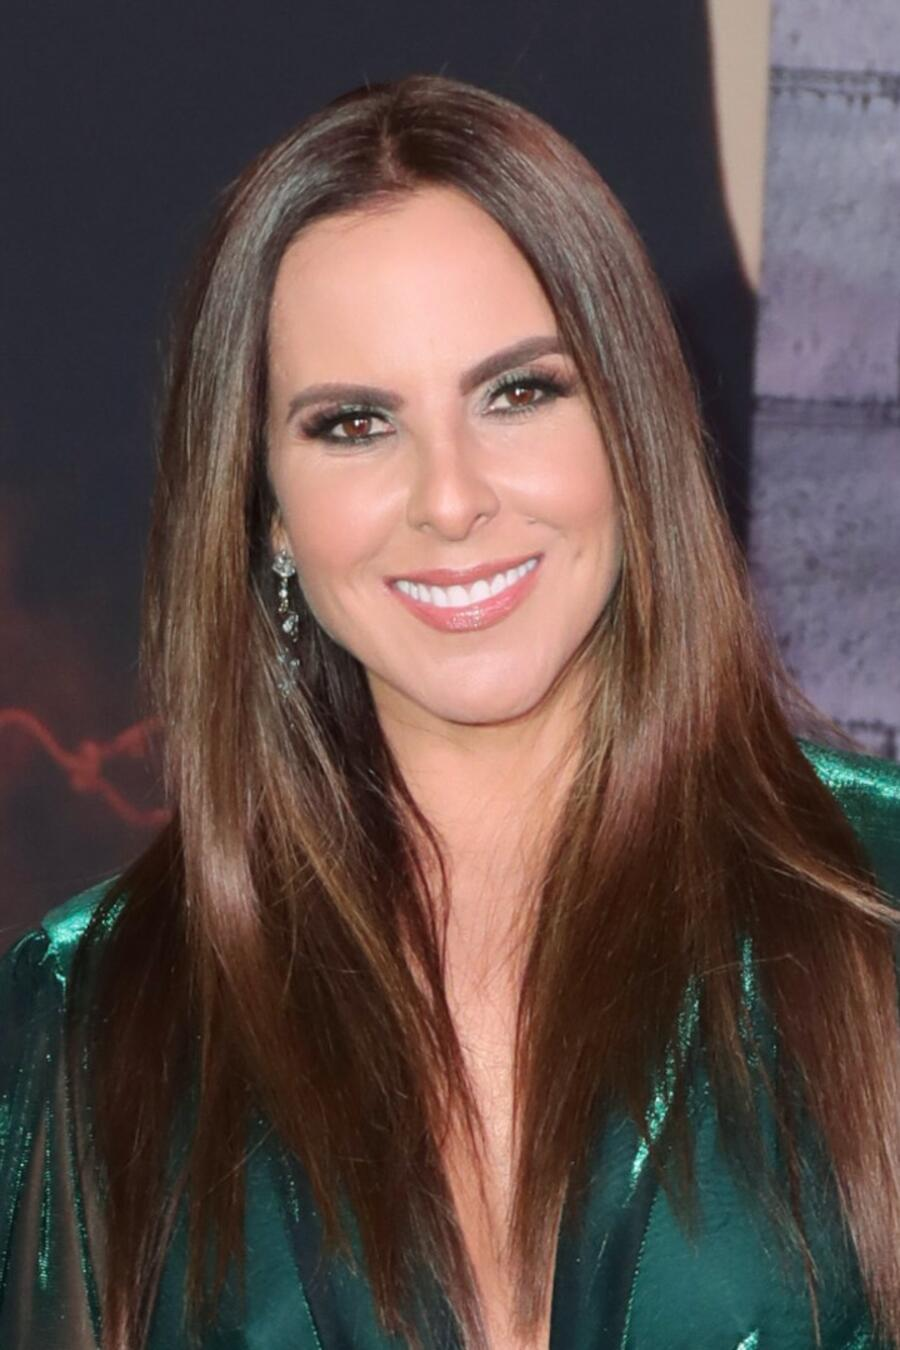 Kate del Castillo en la premier de Bad Boys